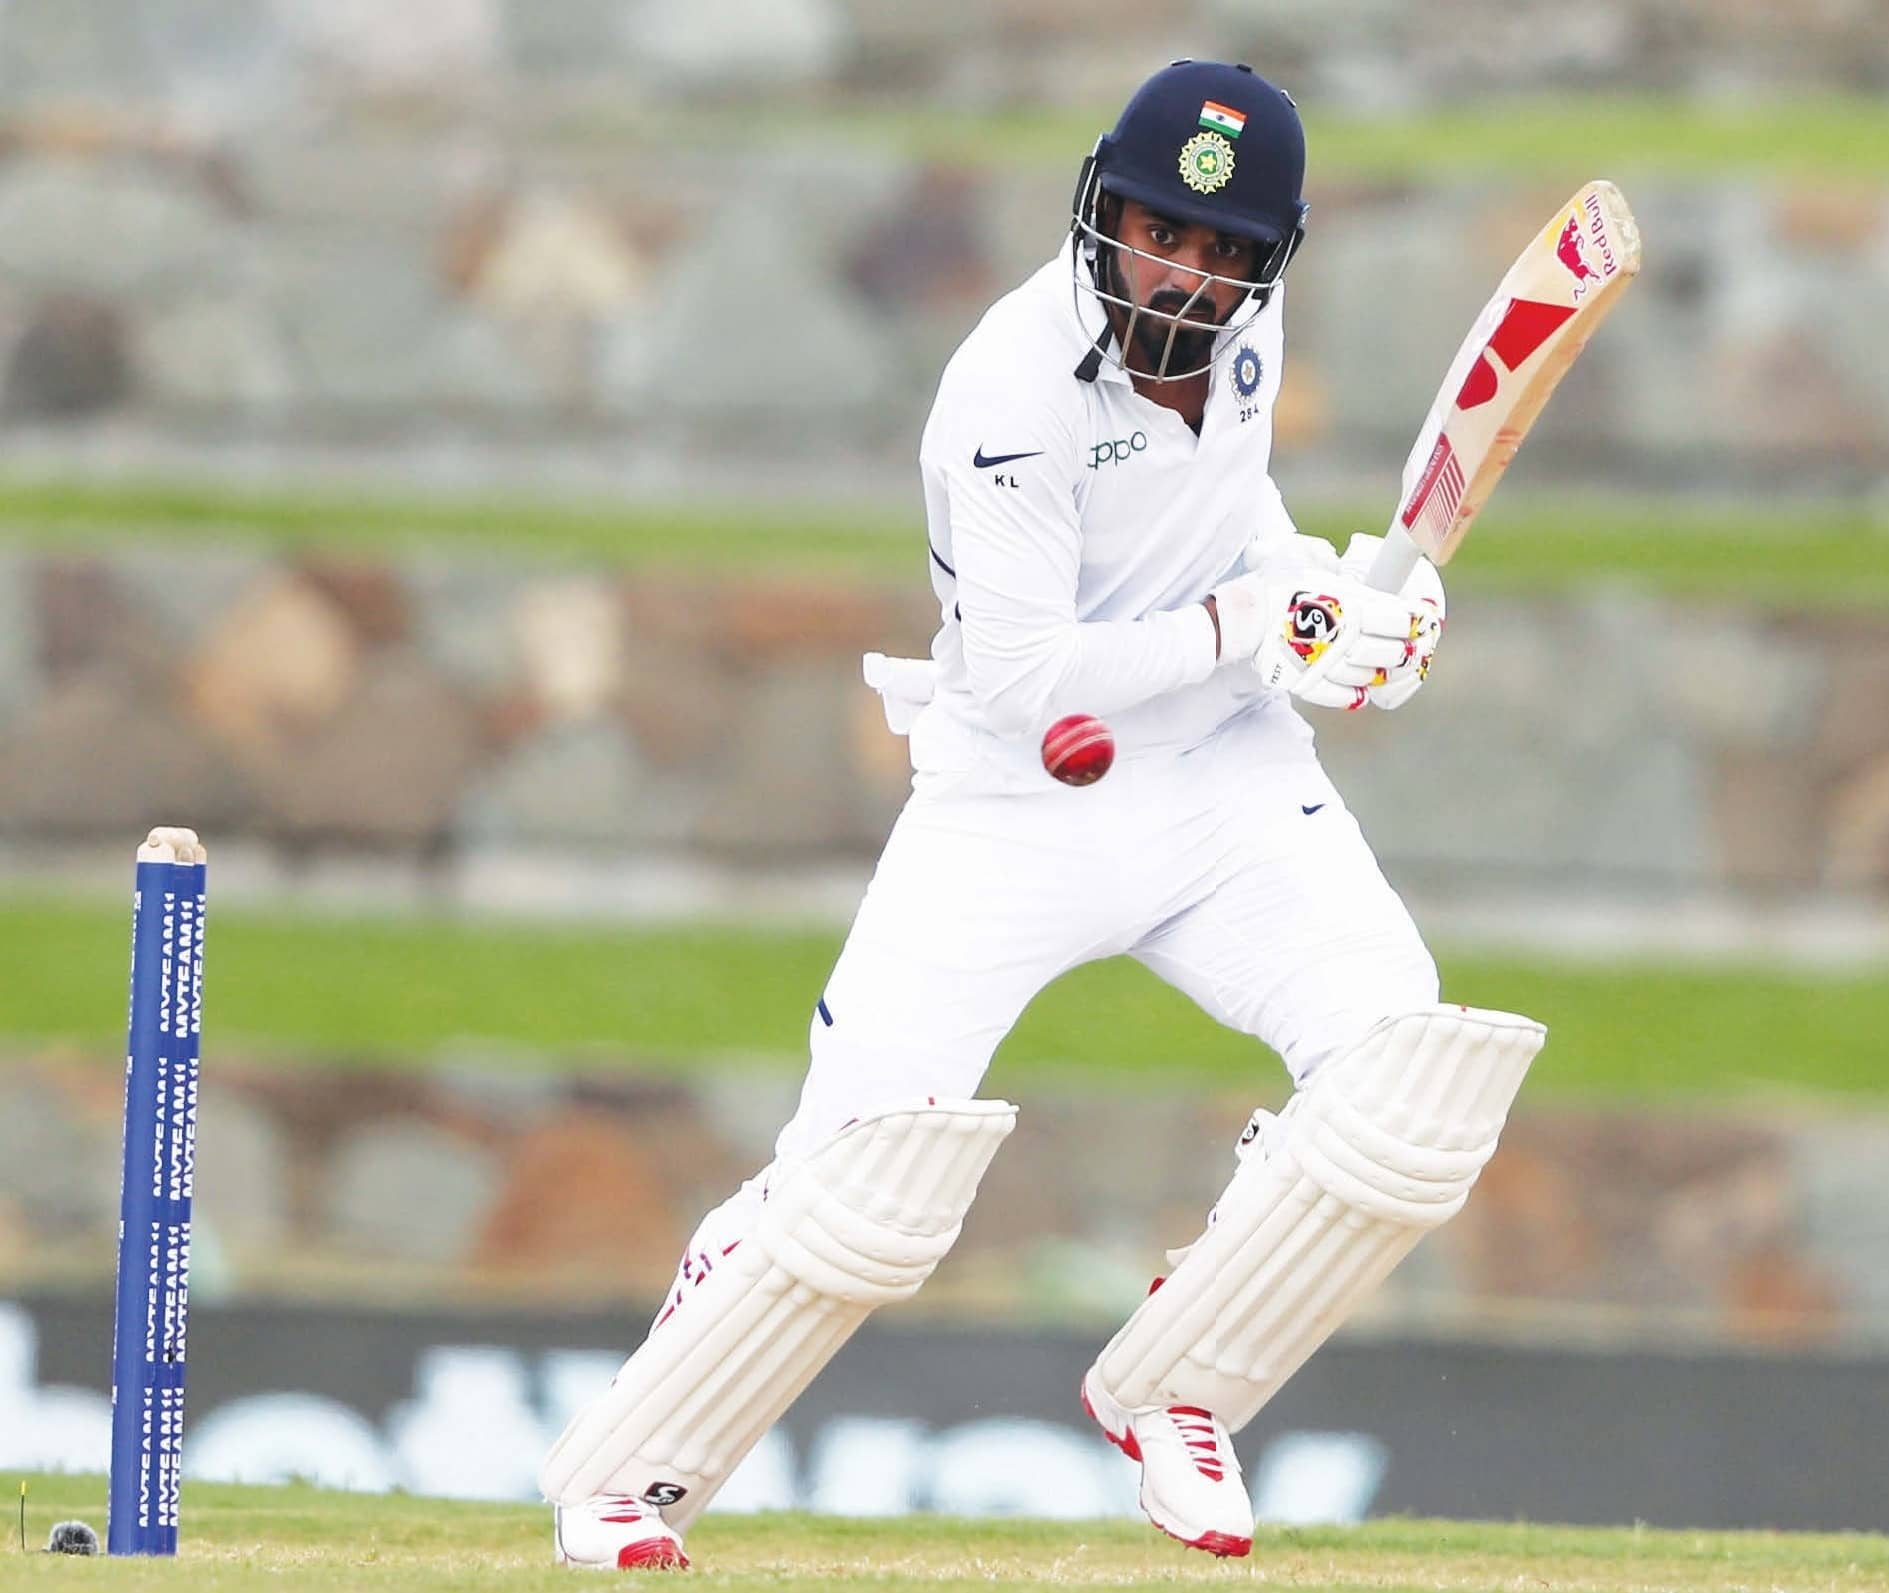 Is It Time To Pack Up KL Rahul's Test Career?